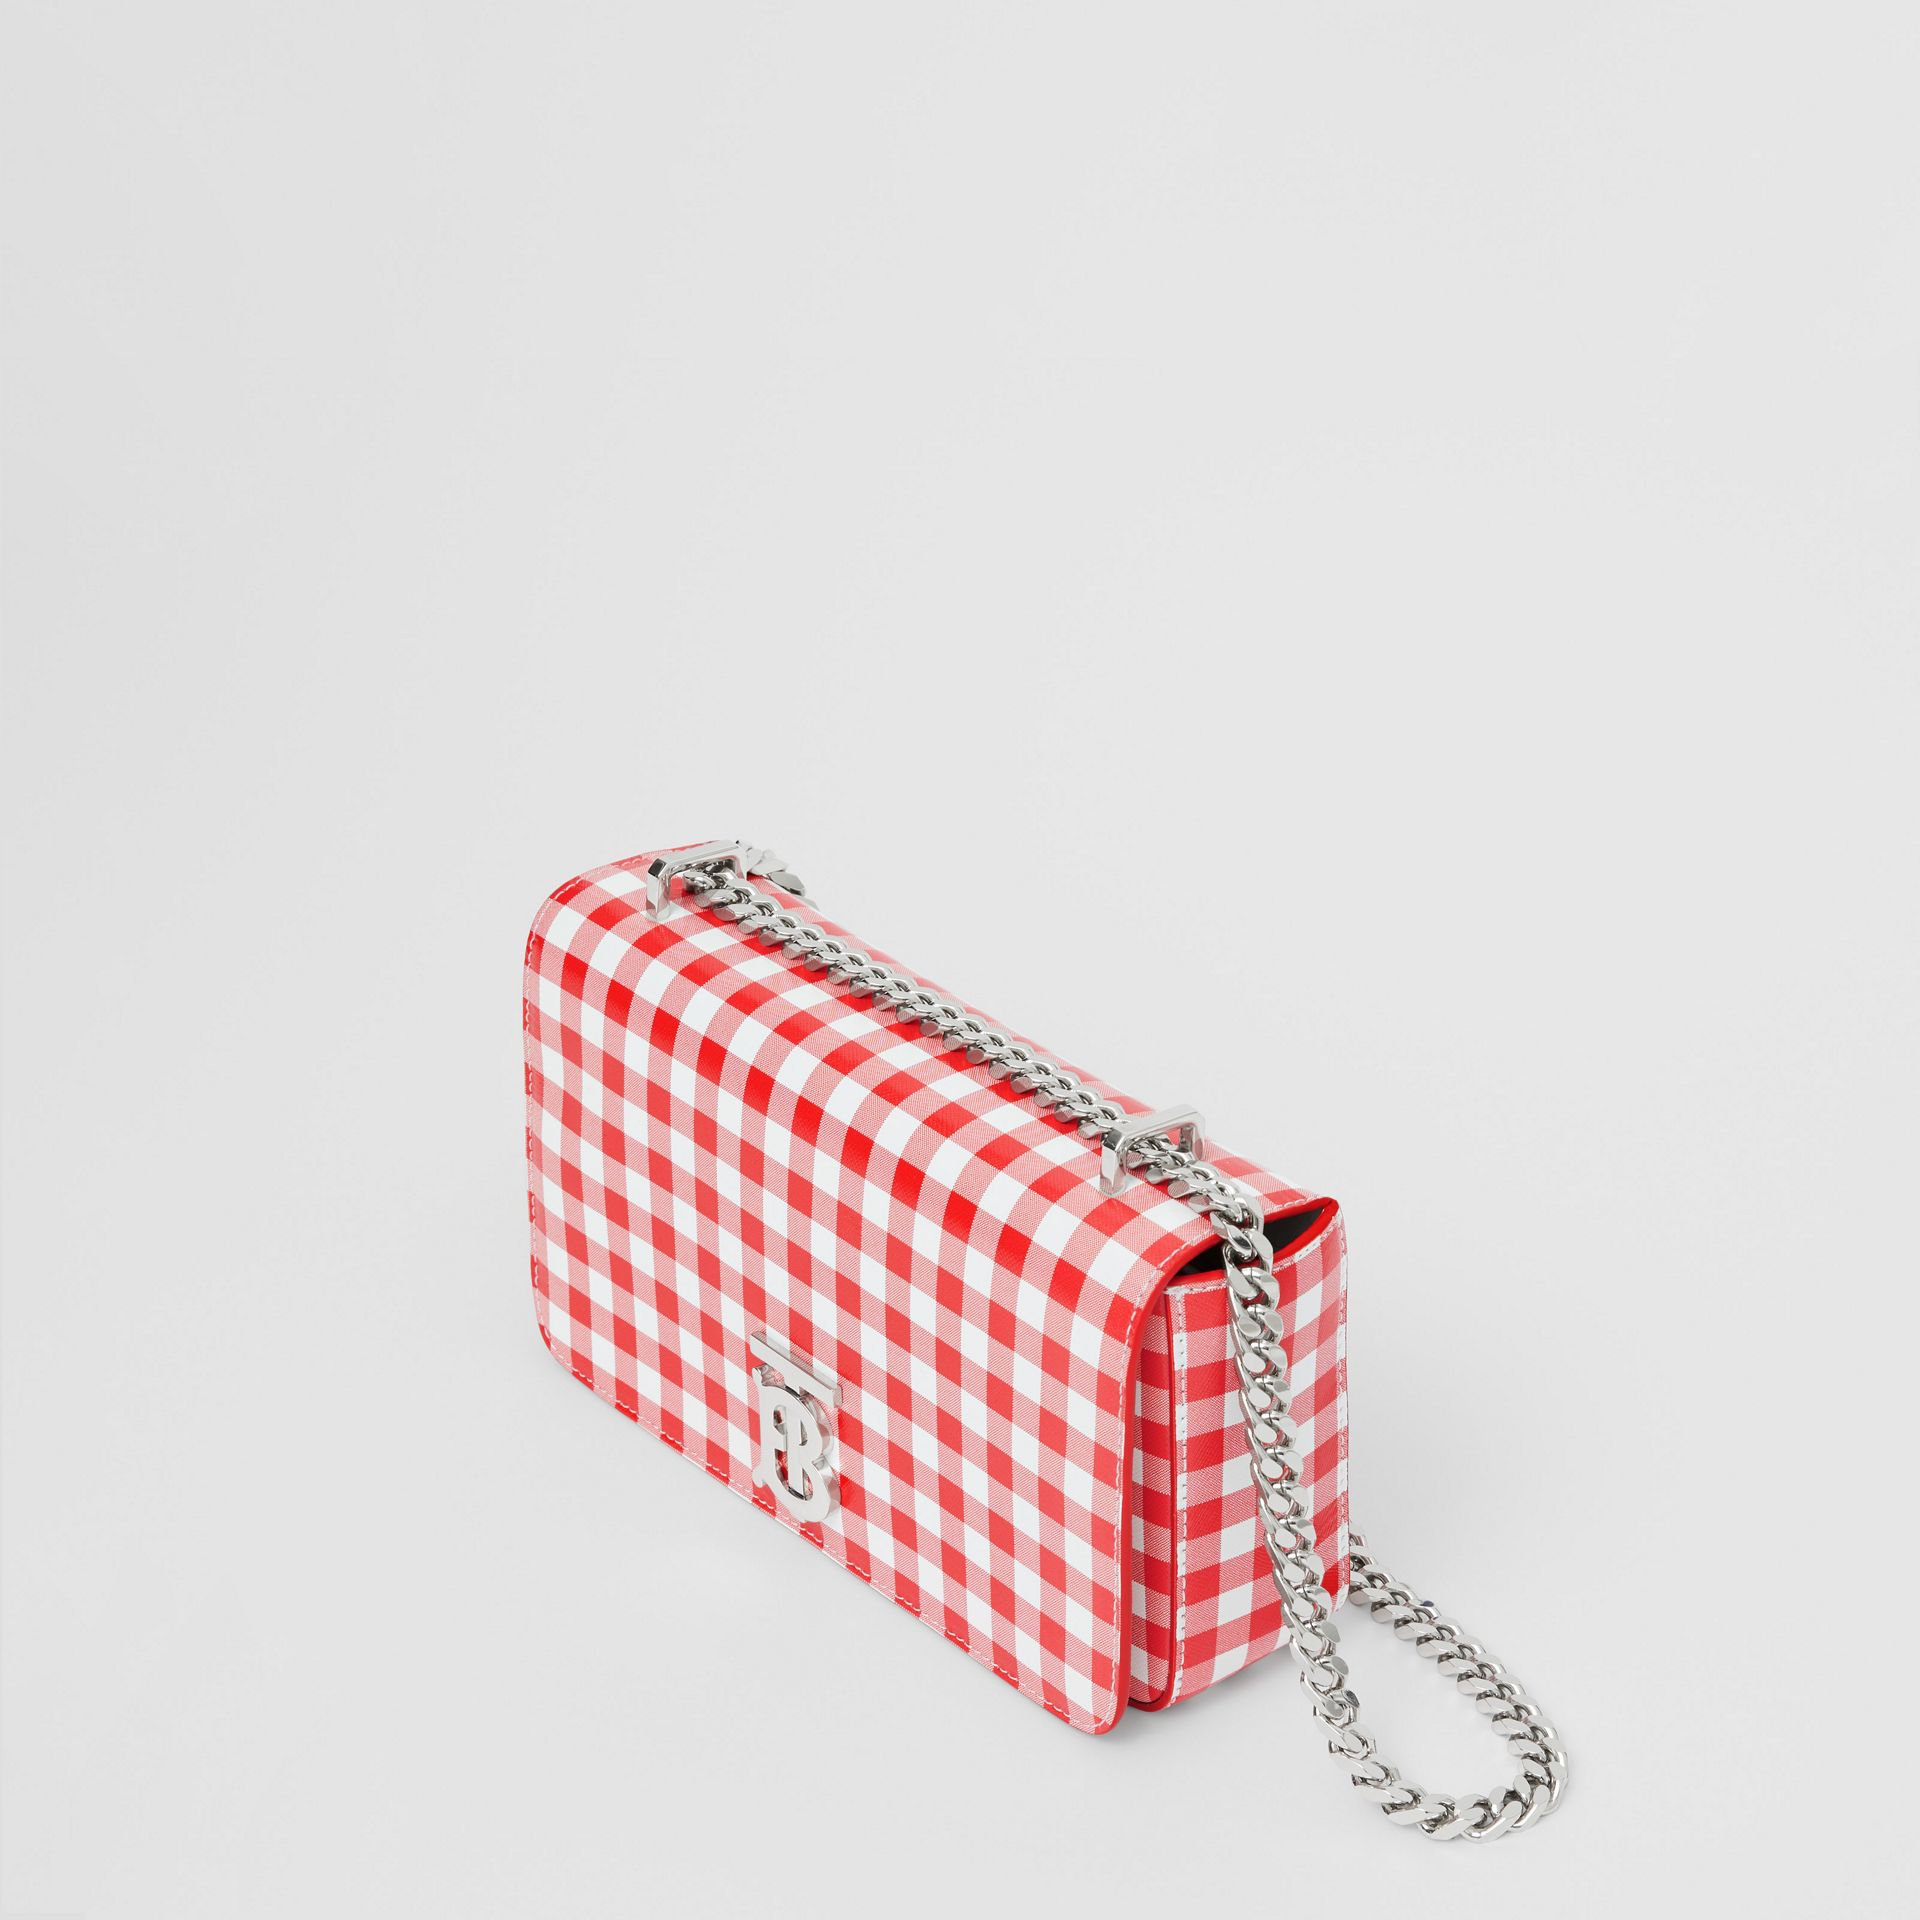 Small Gingham Leather Lola Bag in Red - Women | Burberry - gallery image 2